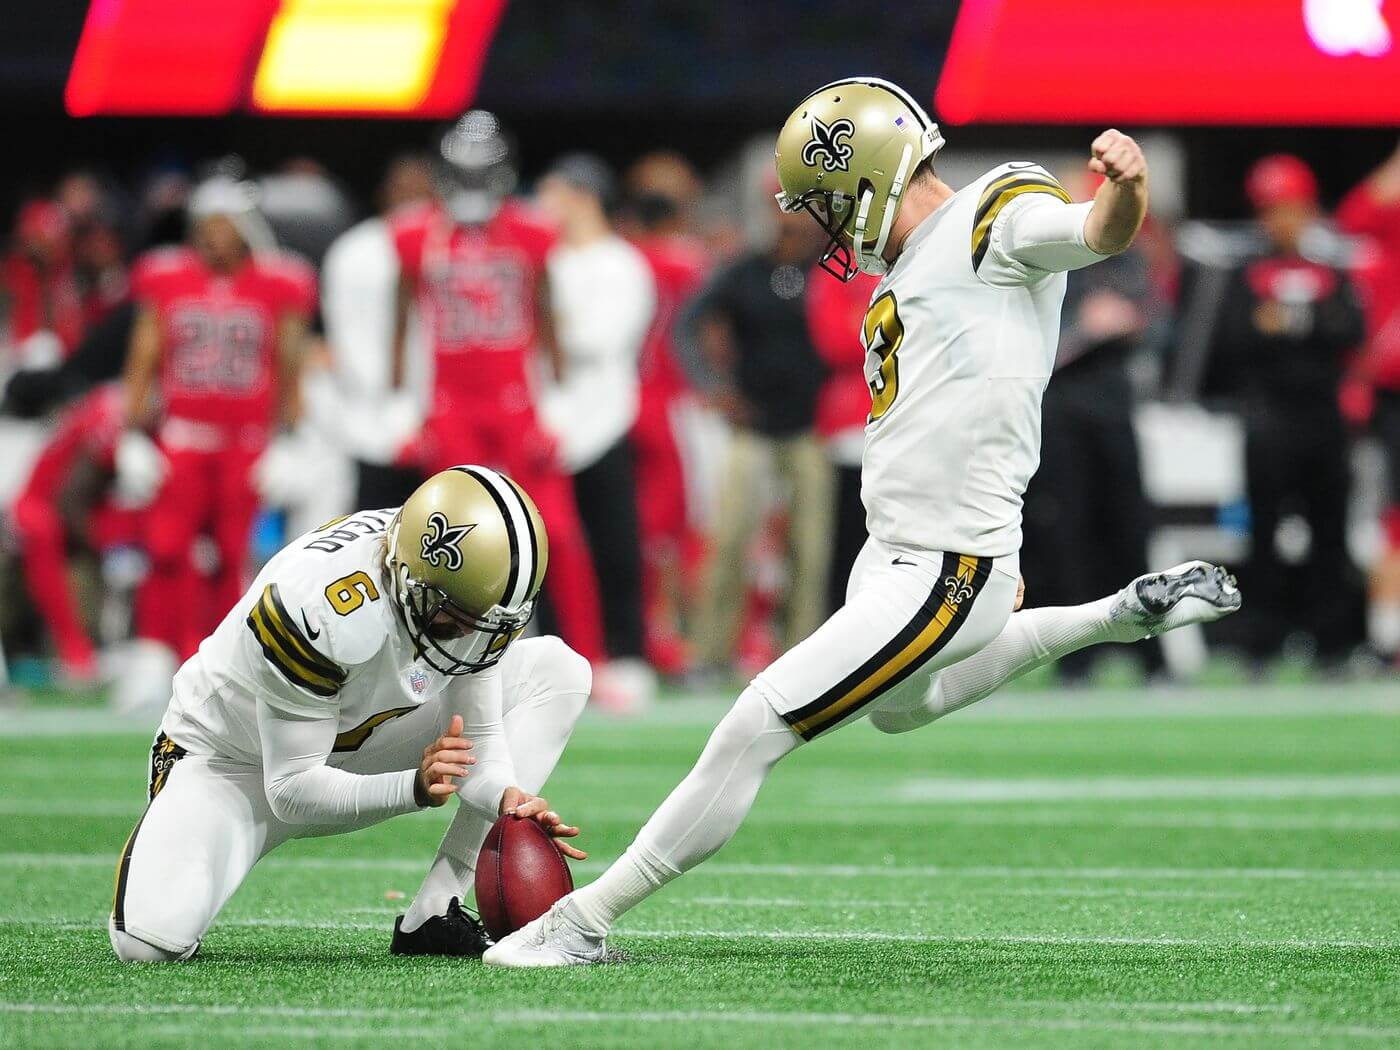 Saints kicker Wil Lutz is one of our DraftKings Captain Mode sneaky plays for Thanksgiving Day